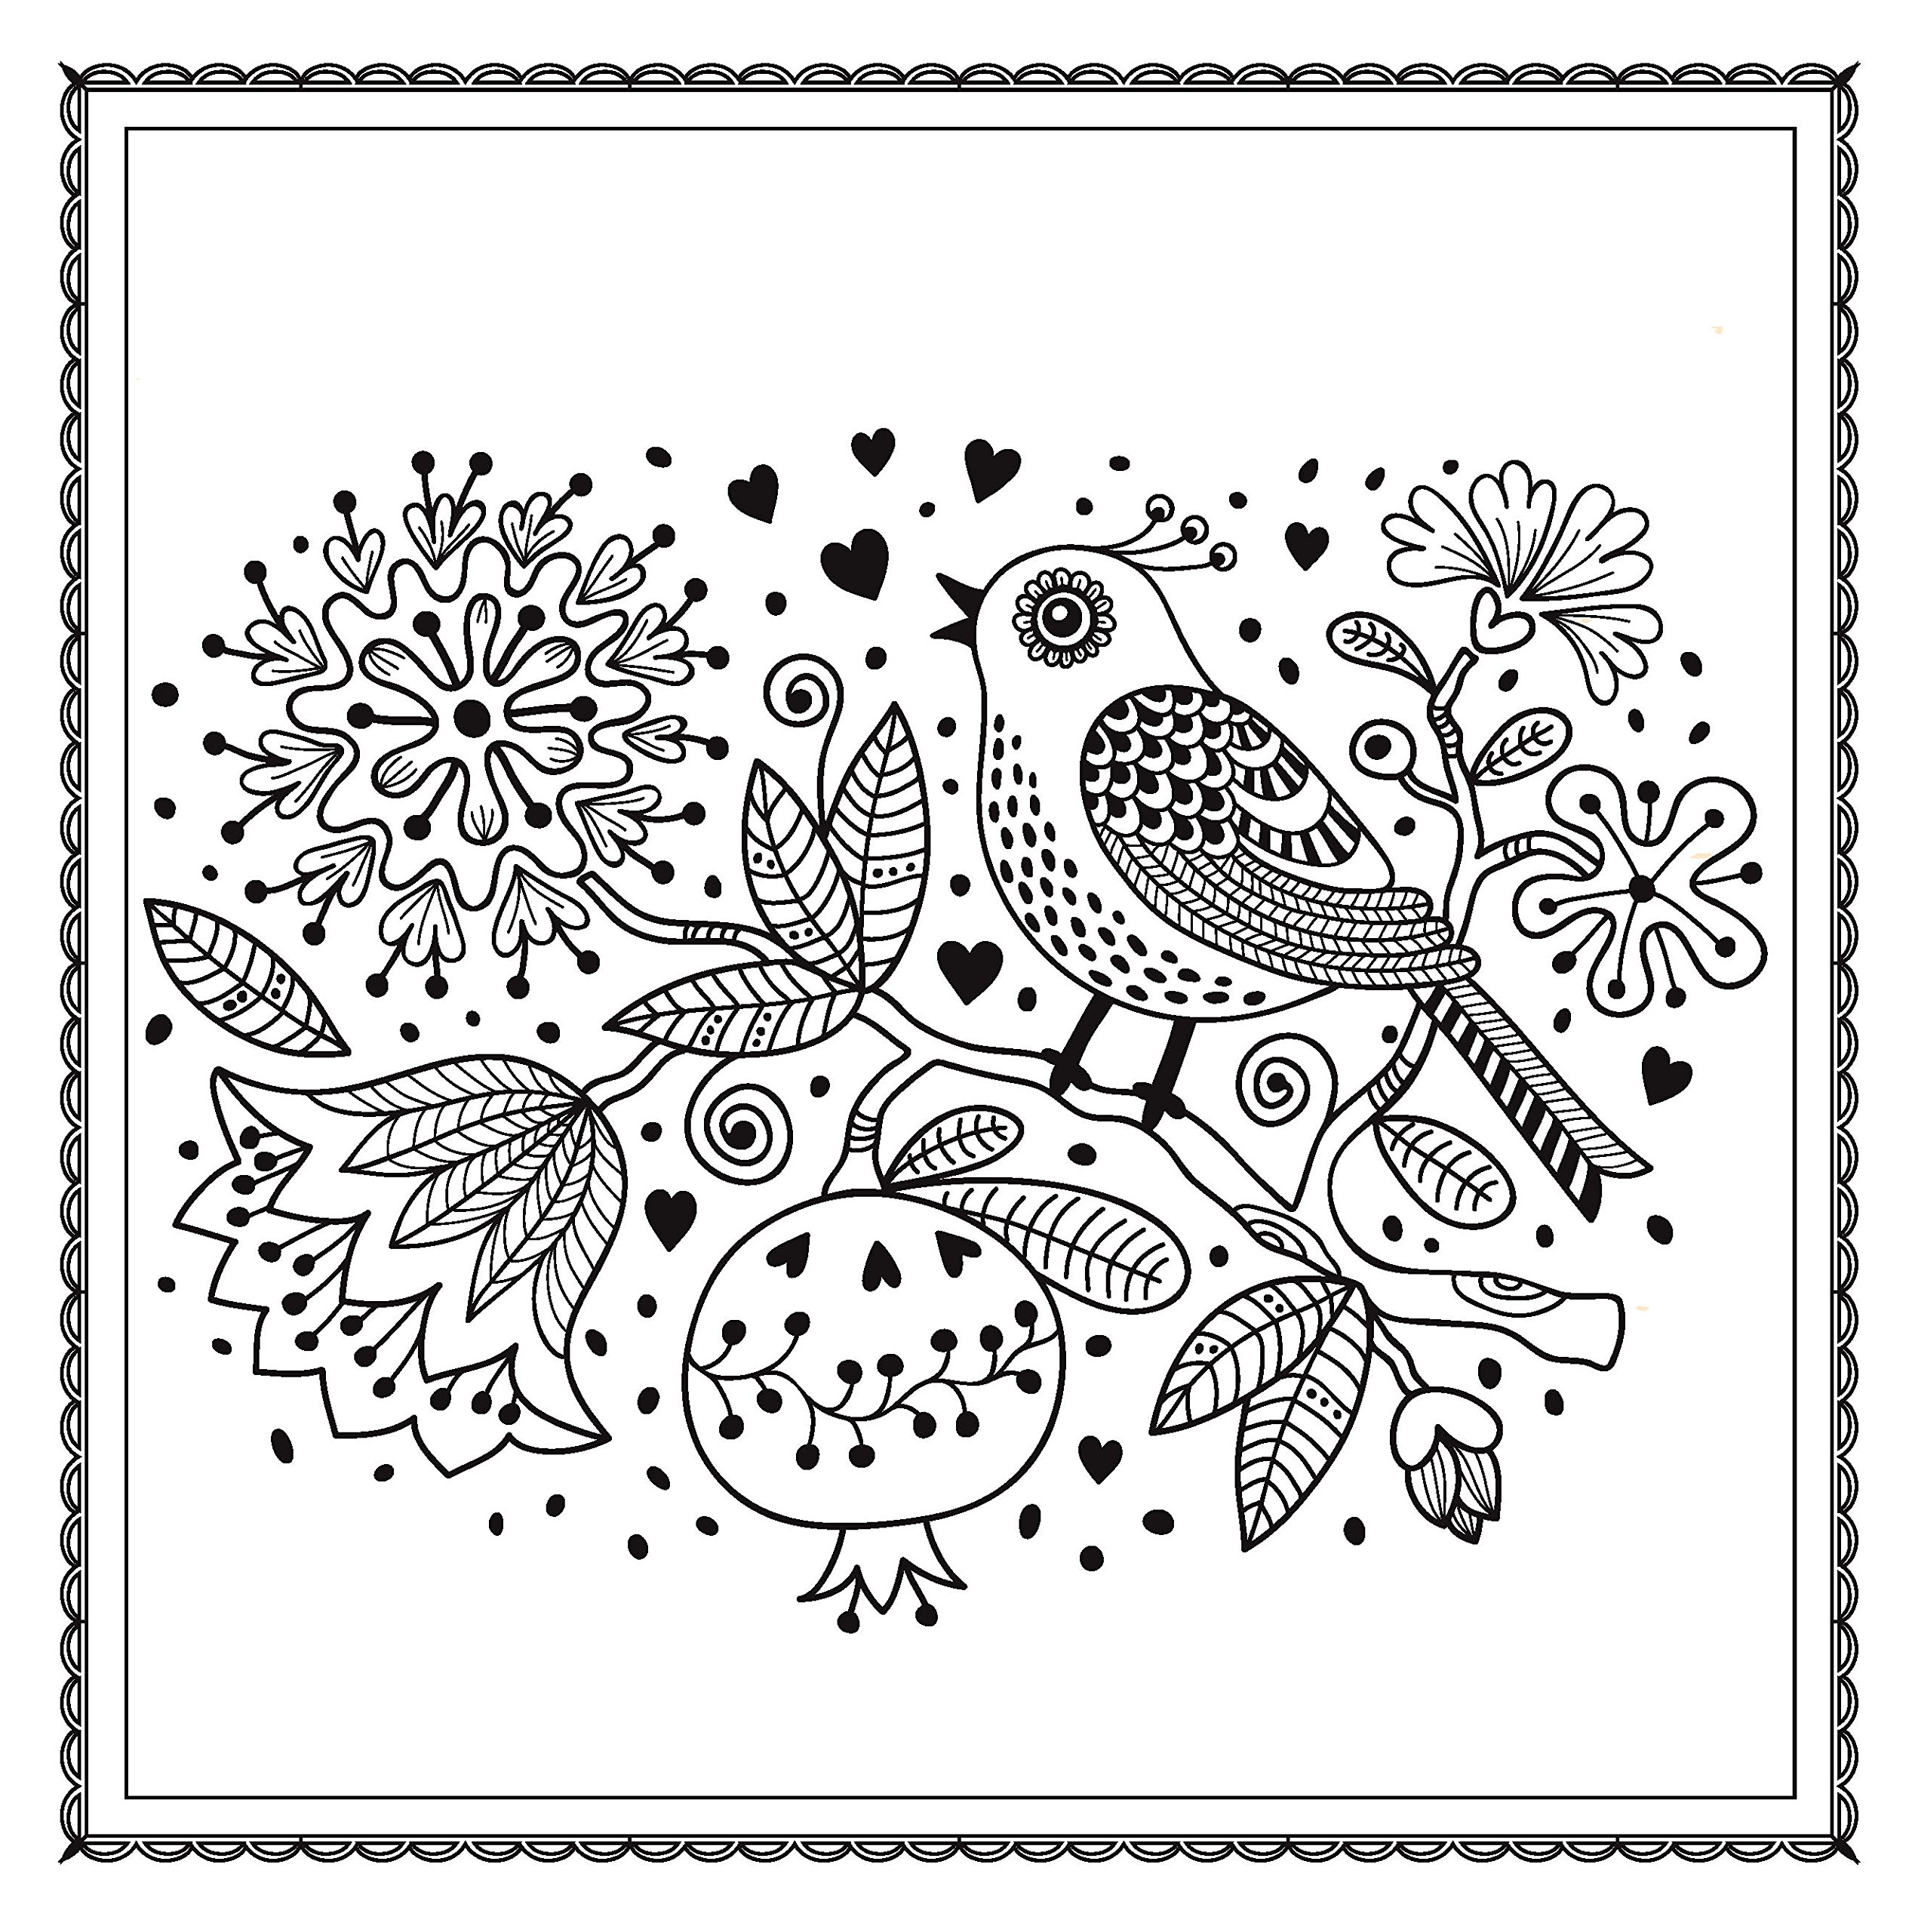 A fun magic coloring book amazon - Amazon Com Blossom Magic Beautiful Floral Patterns Coloring Book For Adults Color Magic 9781438007311 Arsedition Books